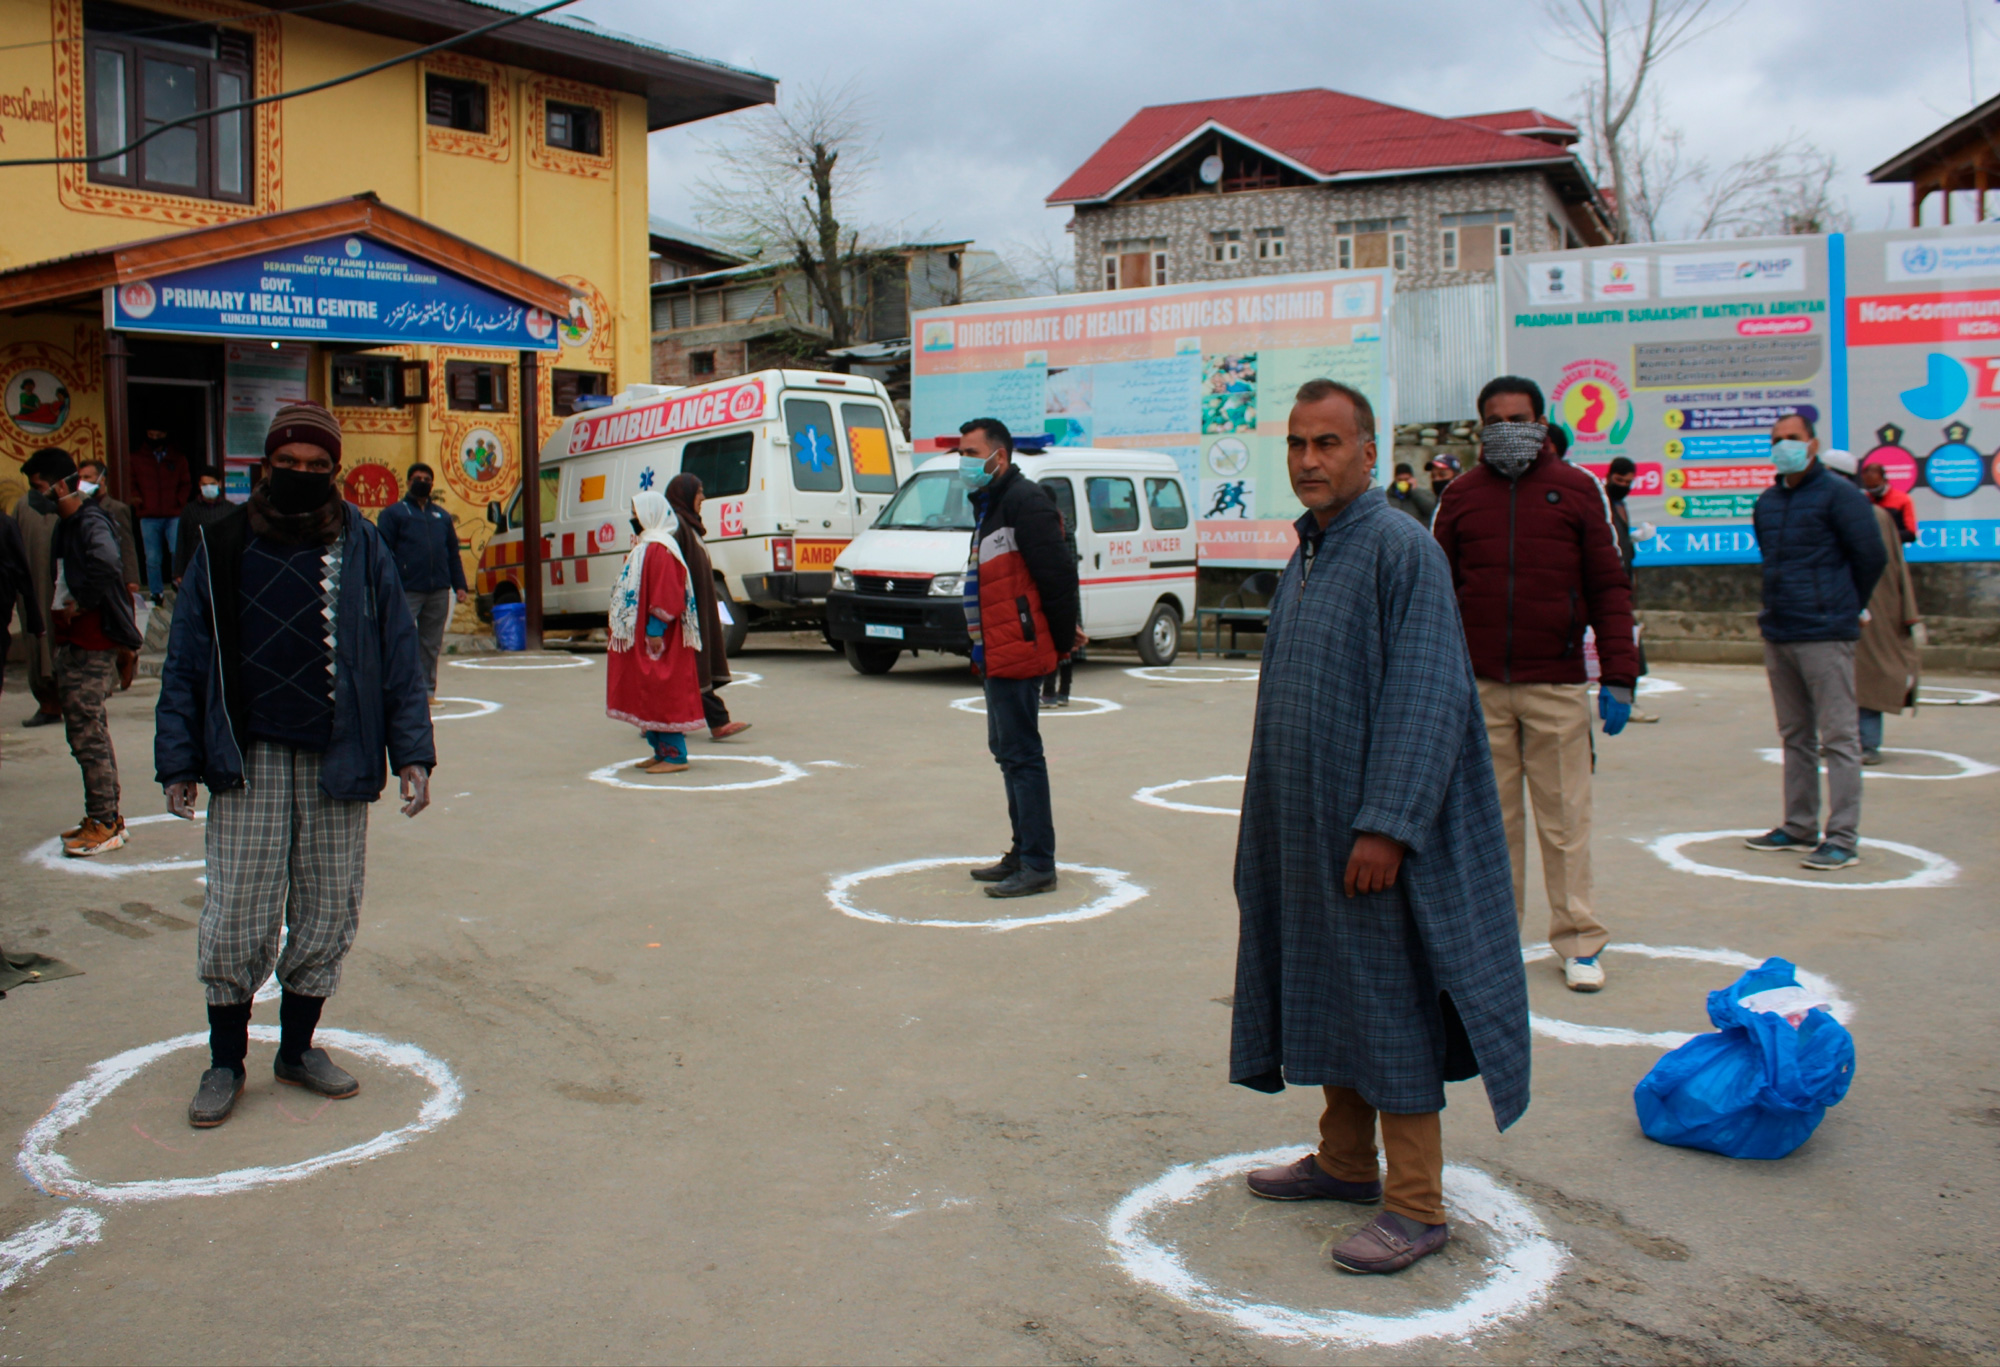 In the street outside a hospital in Srinigar, people wait in small circles marked on the street to stay separated.